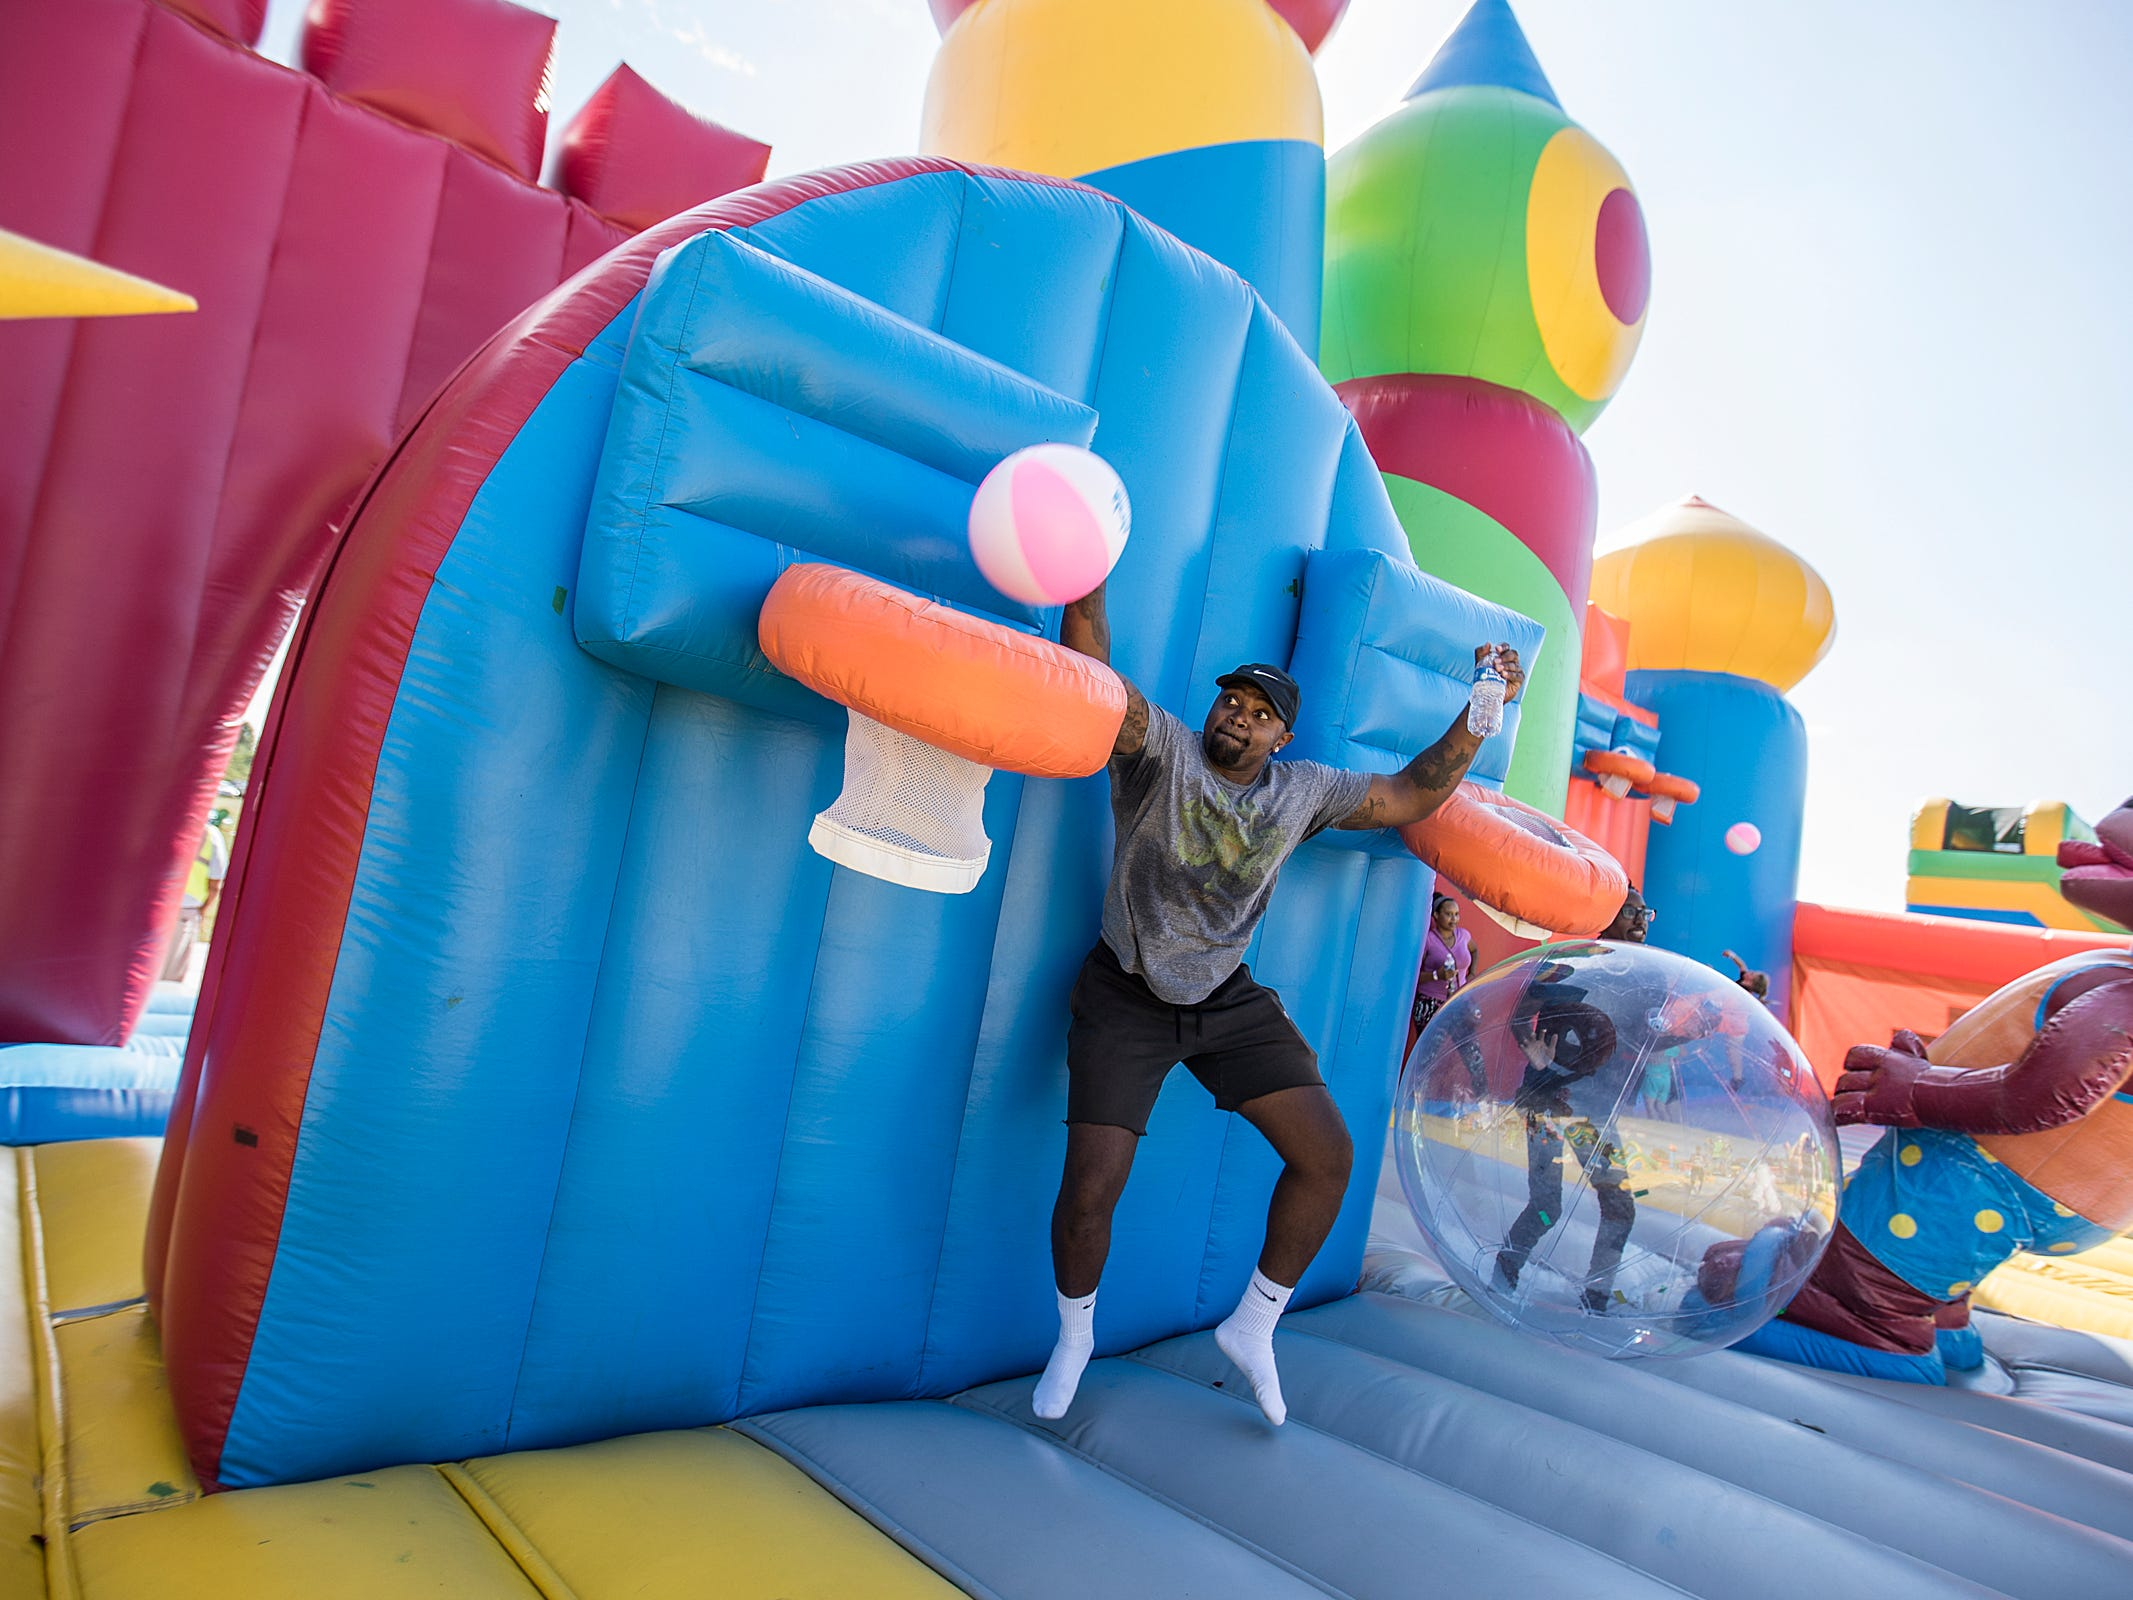 Johnnie Long slams a dunk inside the Big Bounce America inflatable attraction at Waterman's Family Farm in Indianapolis, Friday, Sept. 14, 2018. The world's largest bounce house covers 10,000 square feet and will be in Indy though September 16.